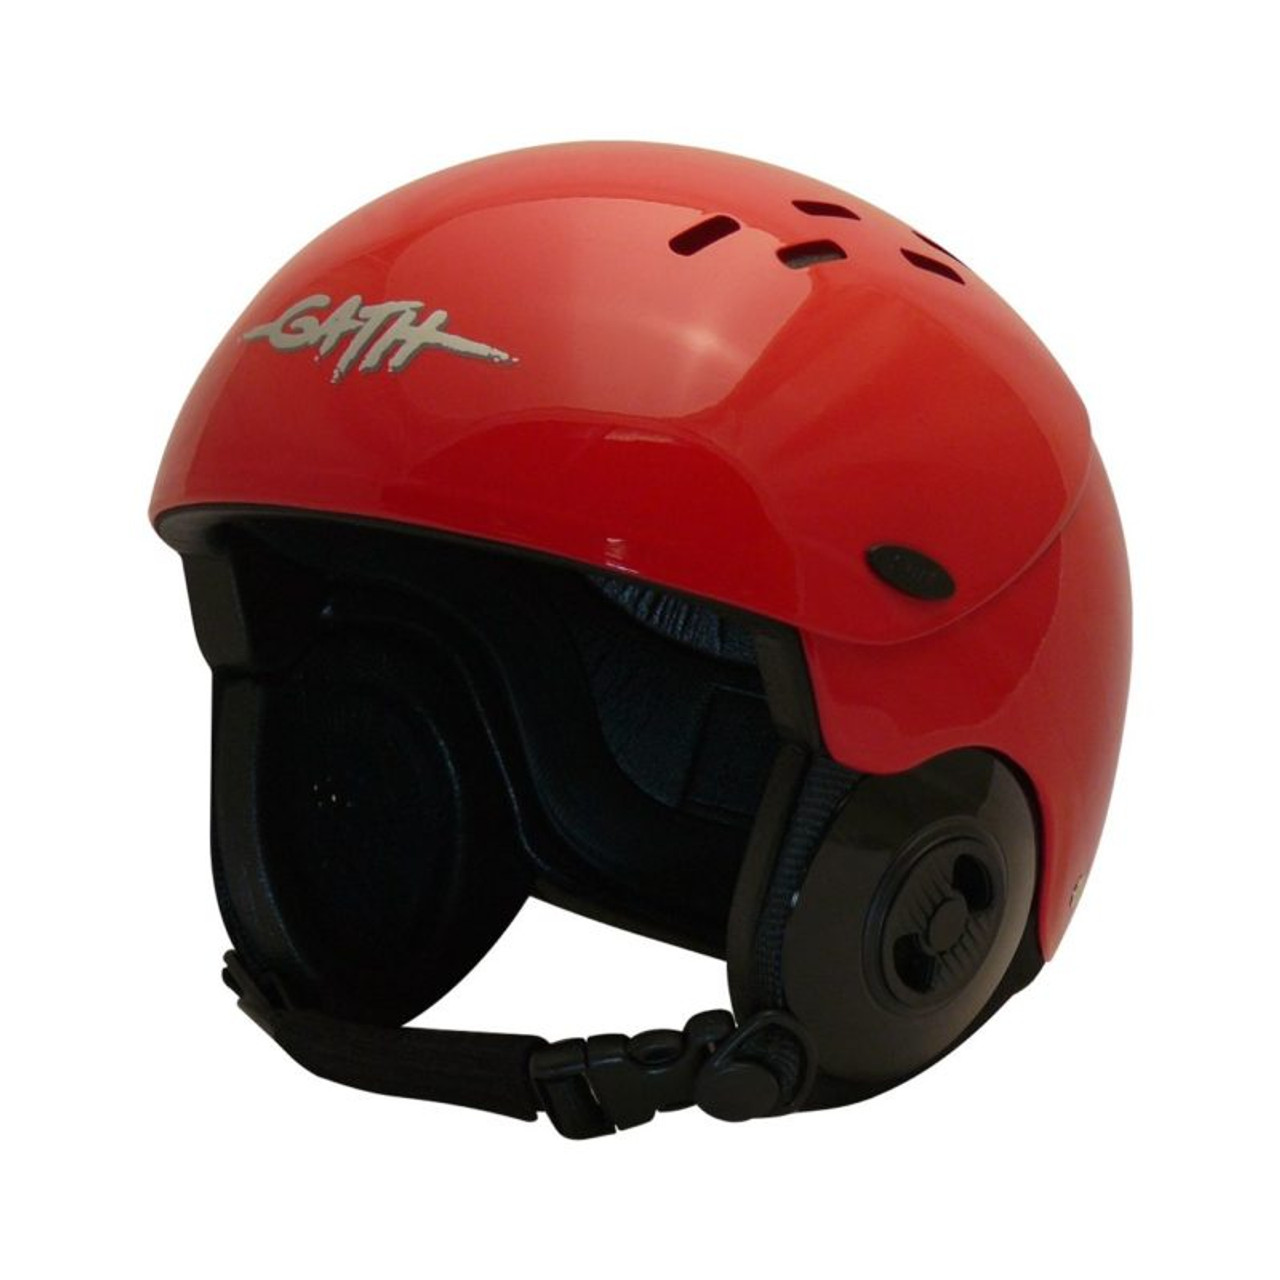 Gath Gedi Sports Helmet - Red